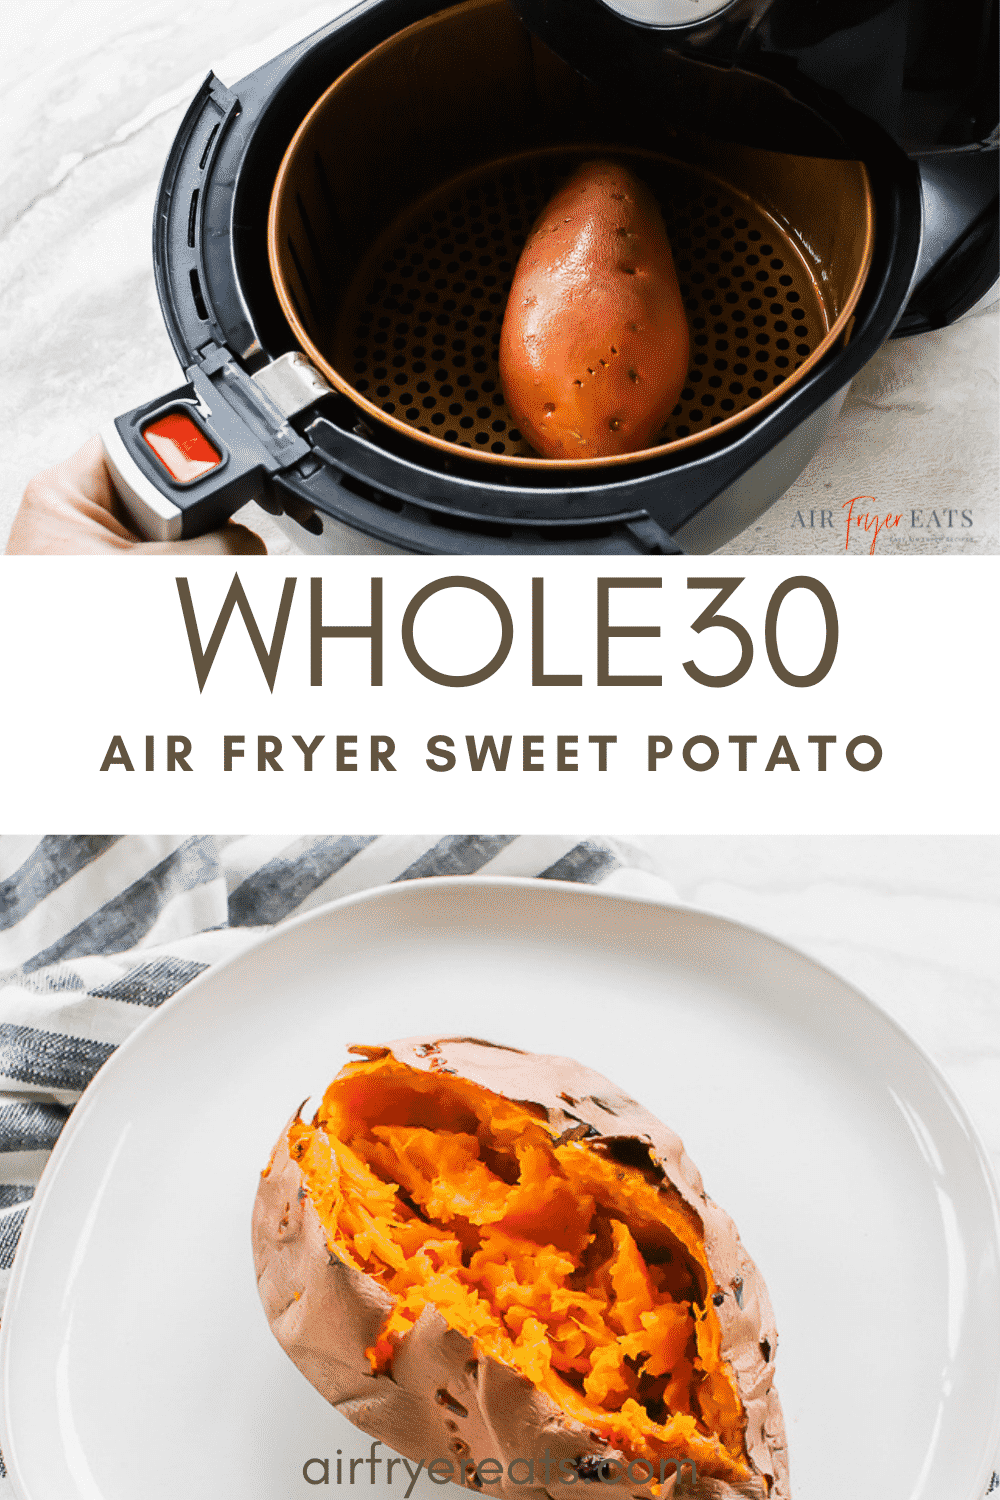 Cooking sweet potatoes doesn't have to be a daunting task when you have an air fryer in your kitchen! This Air Fryer Sweet Potato recipe results in fluffy, scrumptious sweet potatoes every single time! #sweetpotato #sweetpotatorecipes #airfryerrecipes via @vegetarianmamma